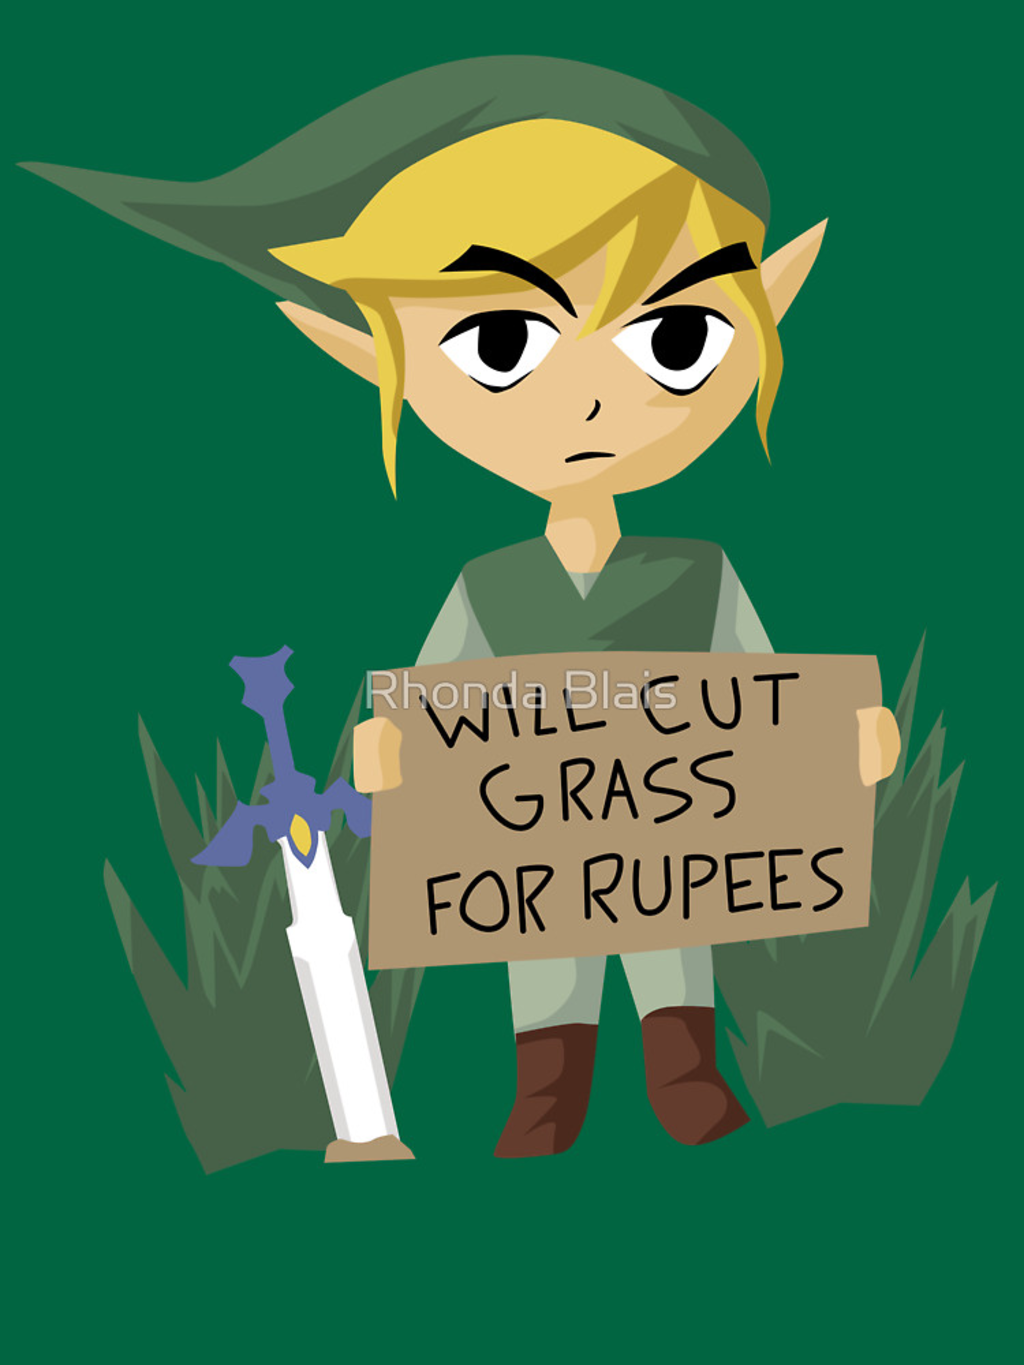 RedBubble: Looking For Work - Legend of Zelda